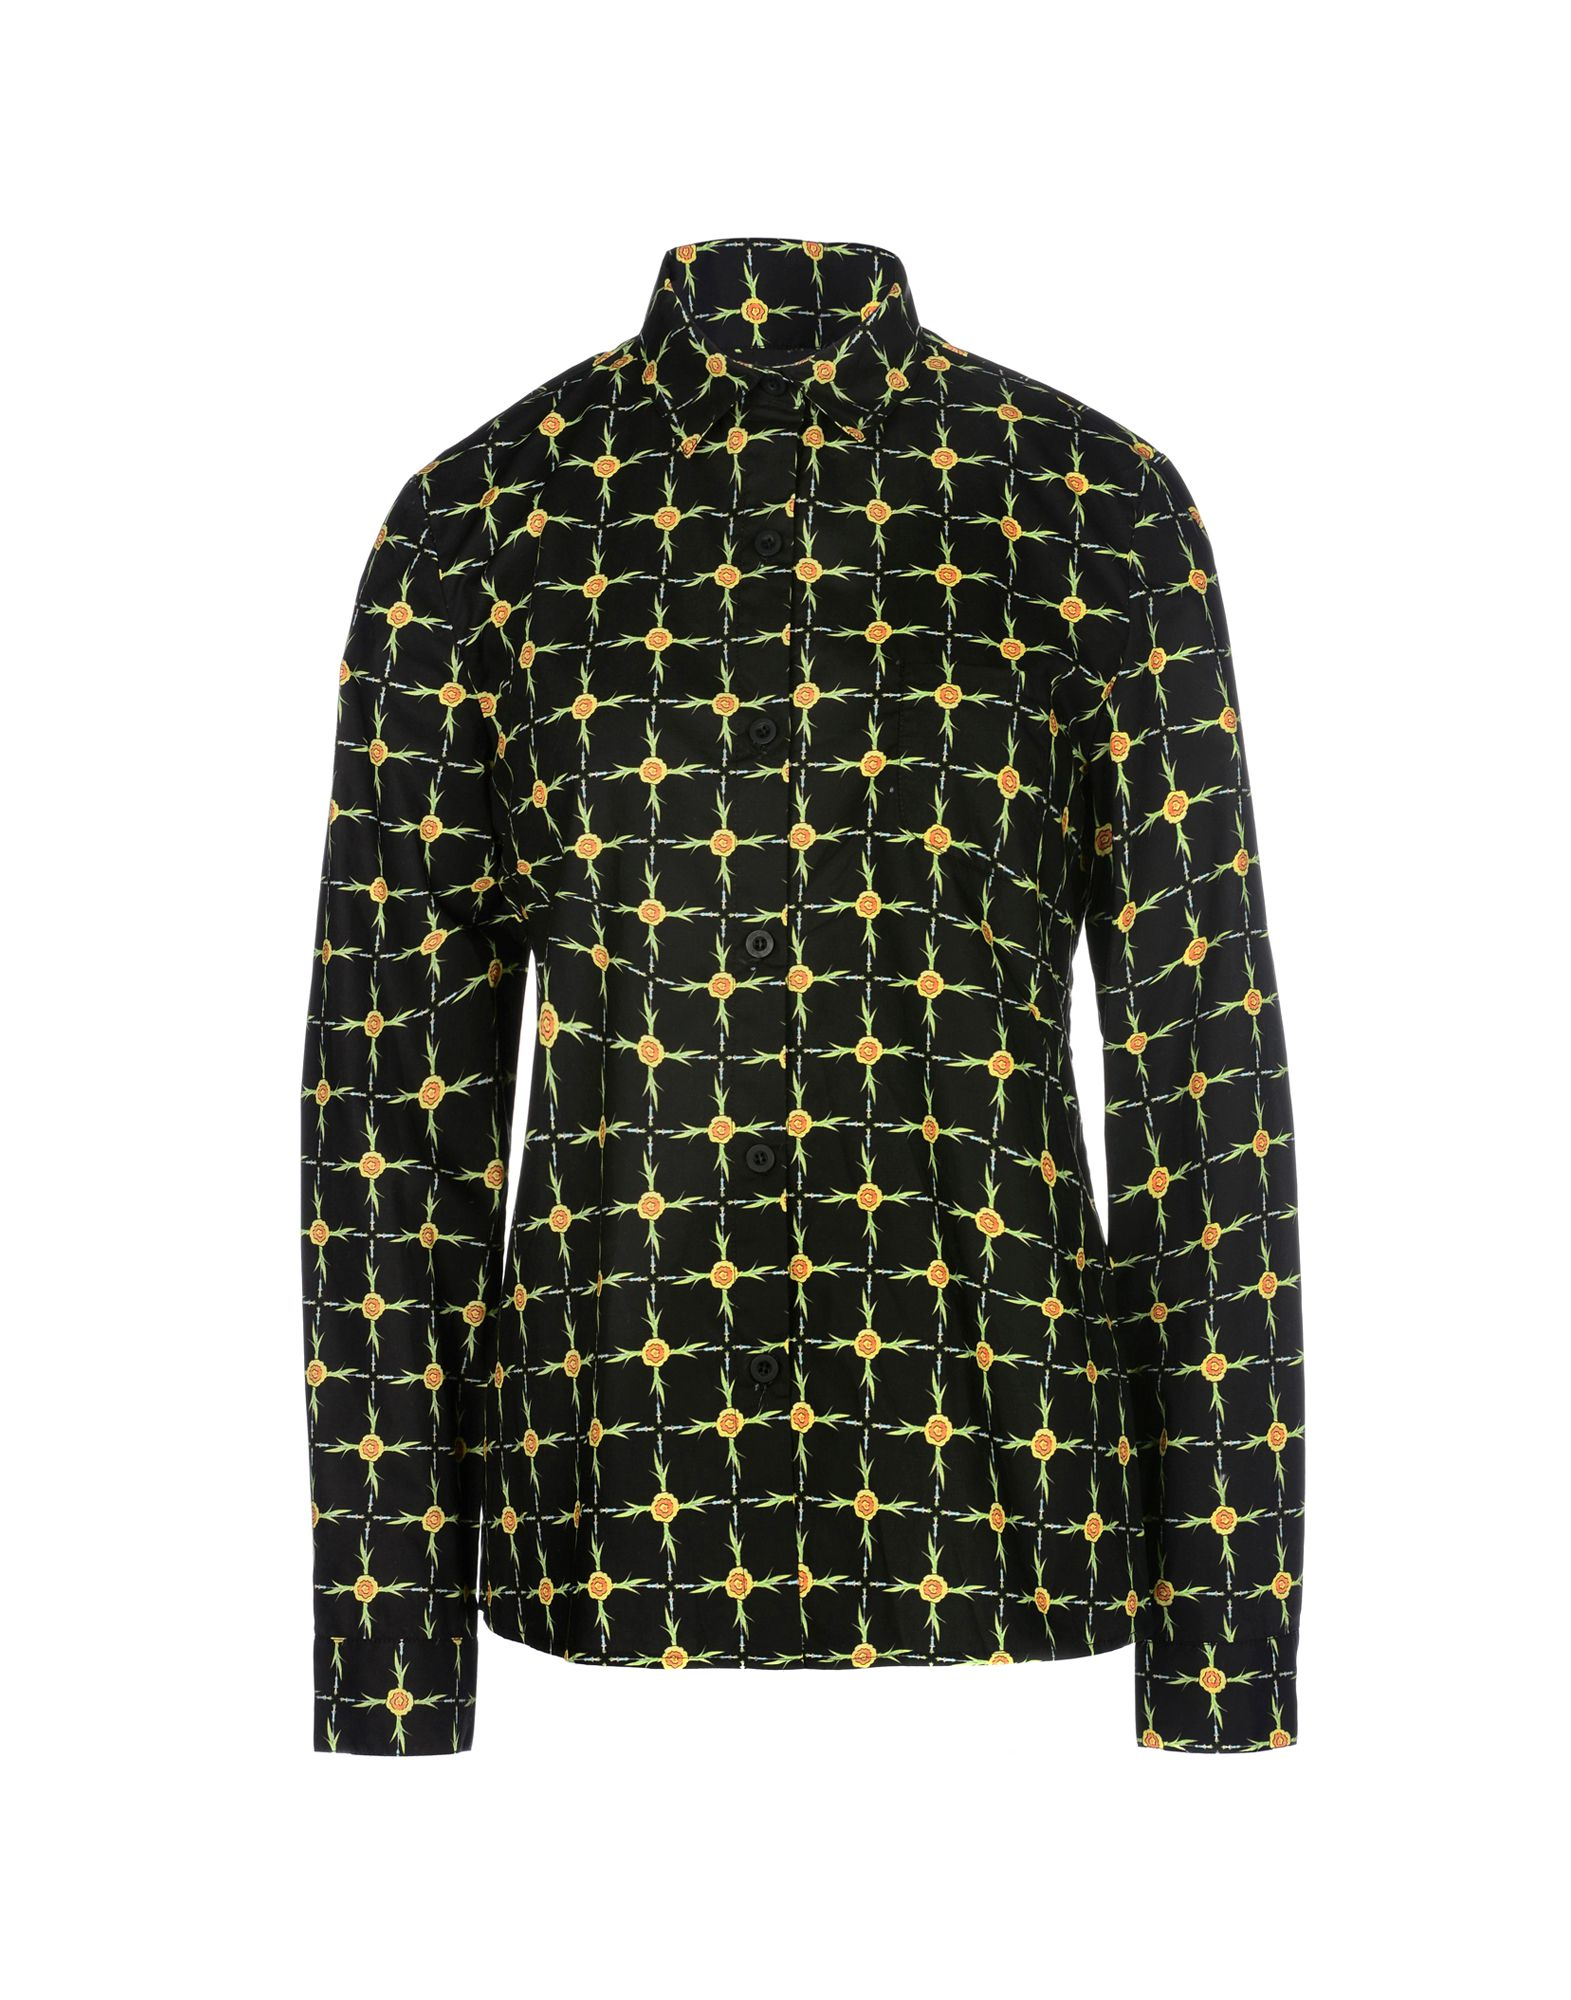 LAURENCE & CHICO Patterned Shirts & Blouses in Black